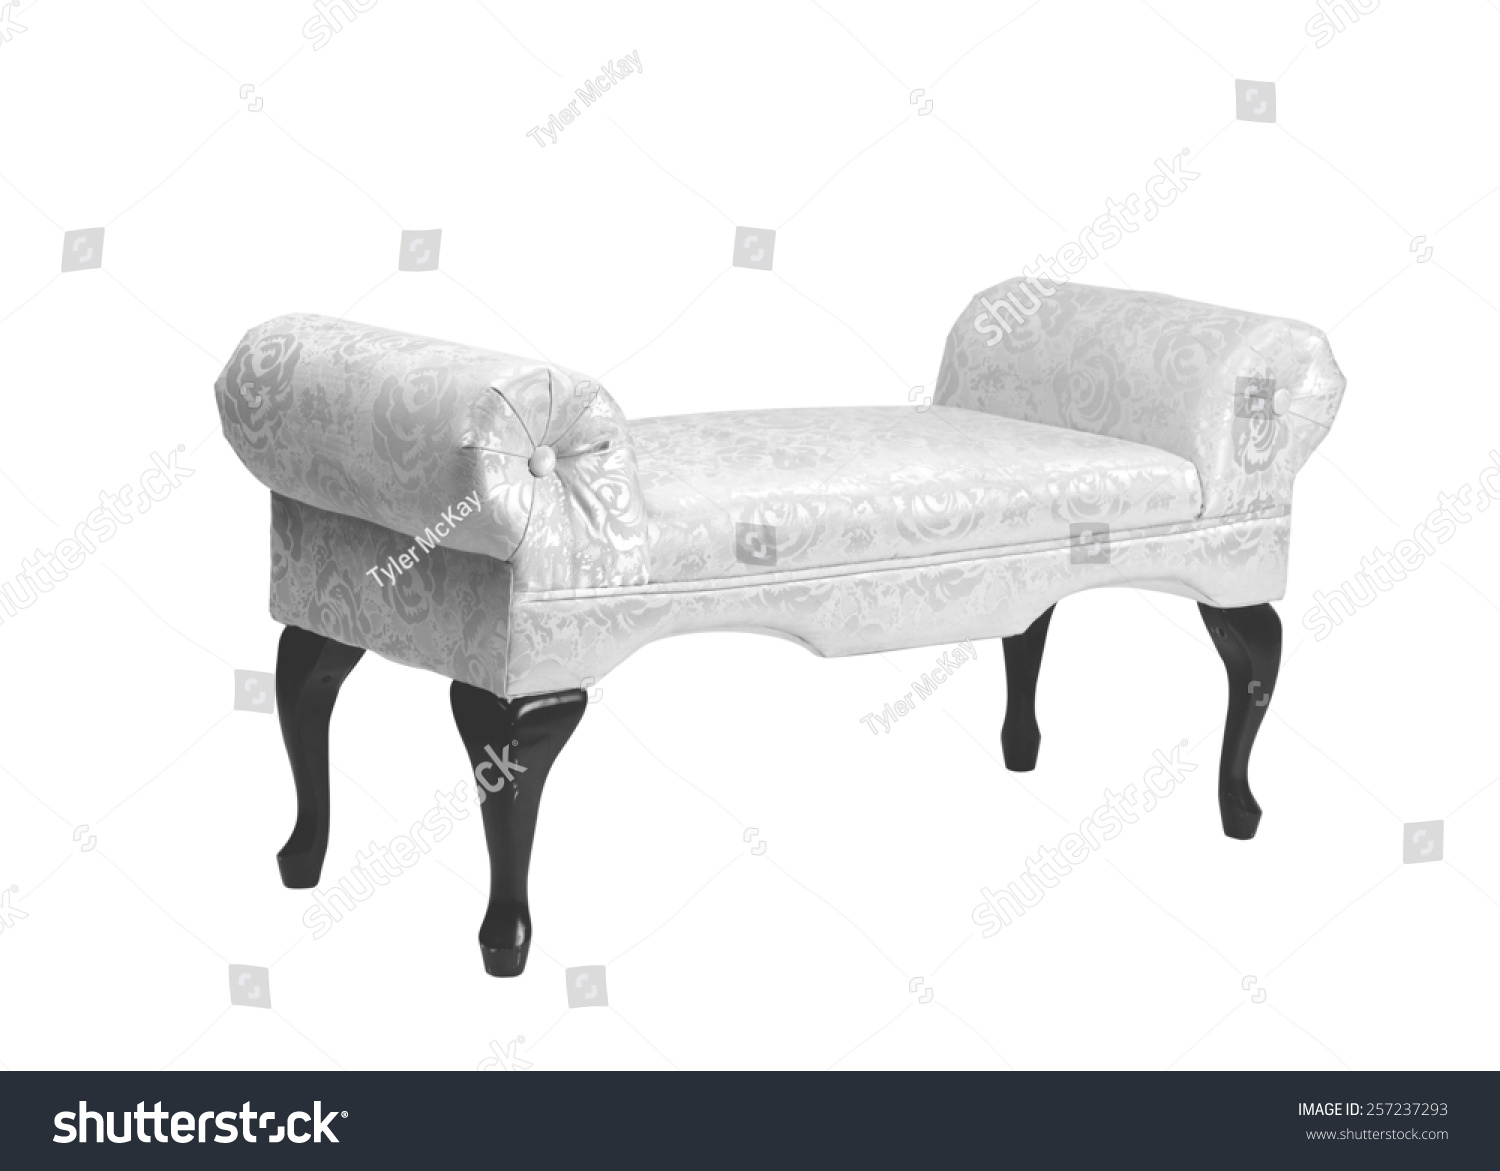 Antique Oldfashioned Upholstered Bench Black White Stock Photo Edit Now 257237293